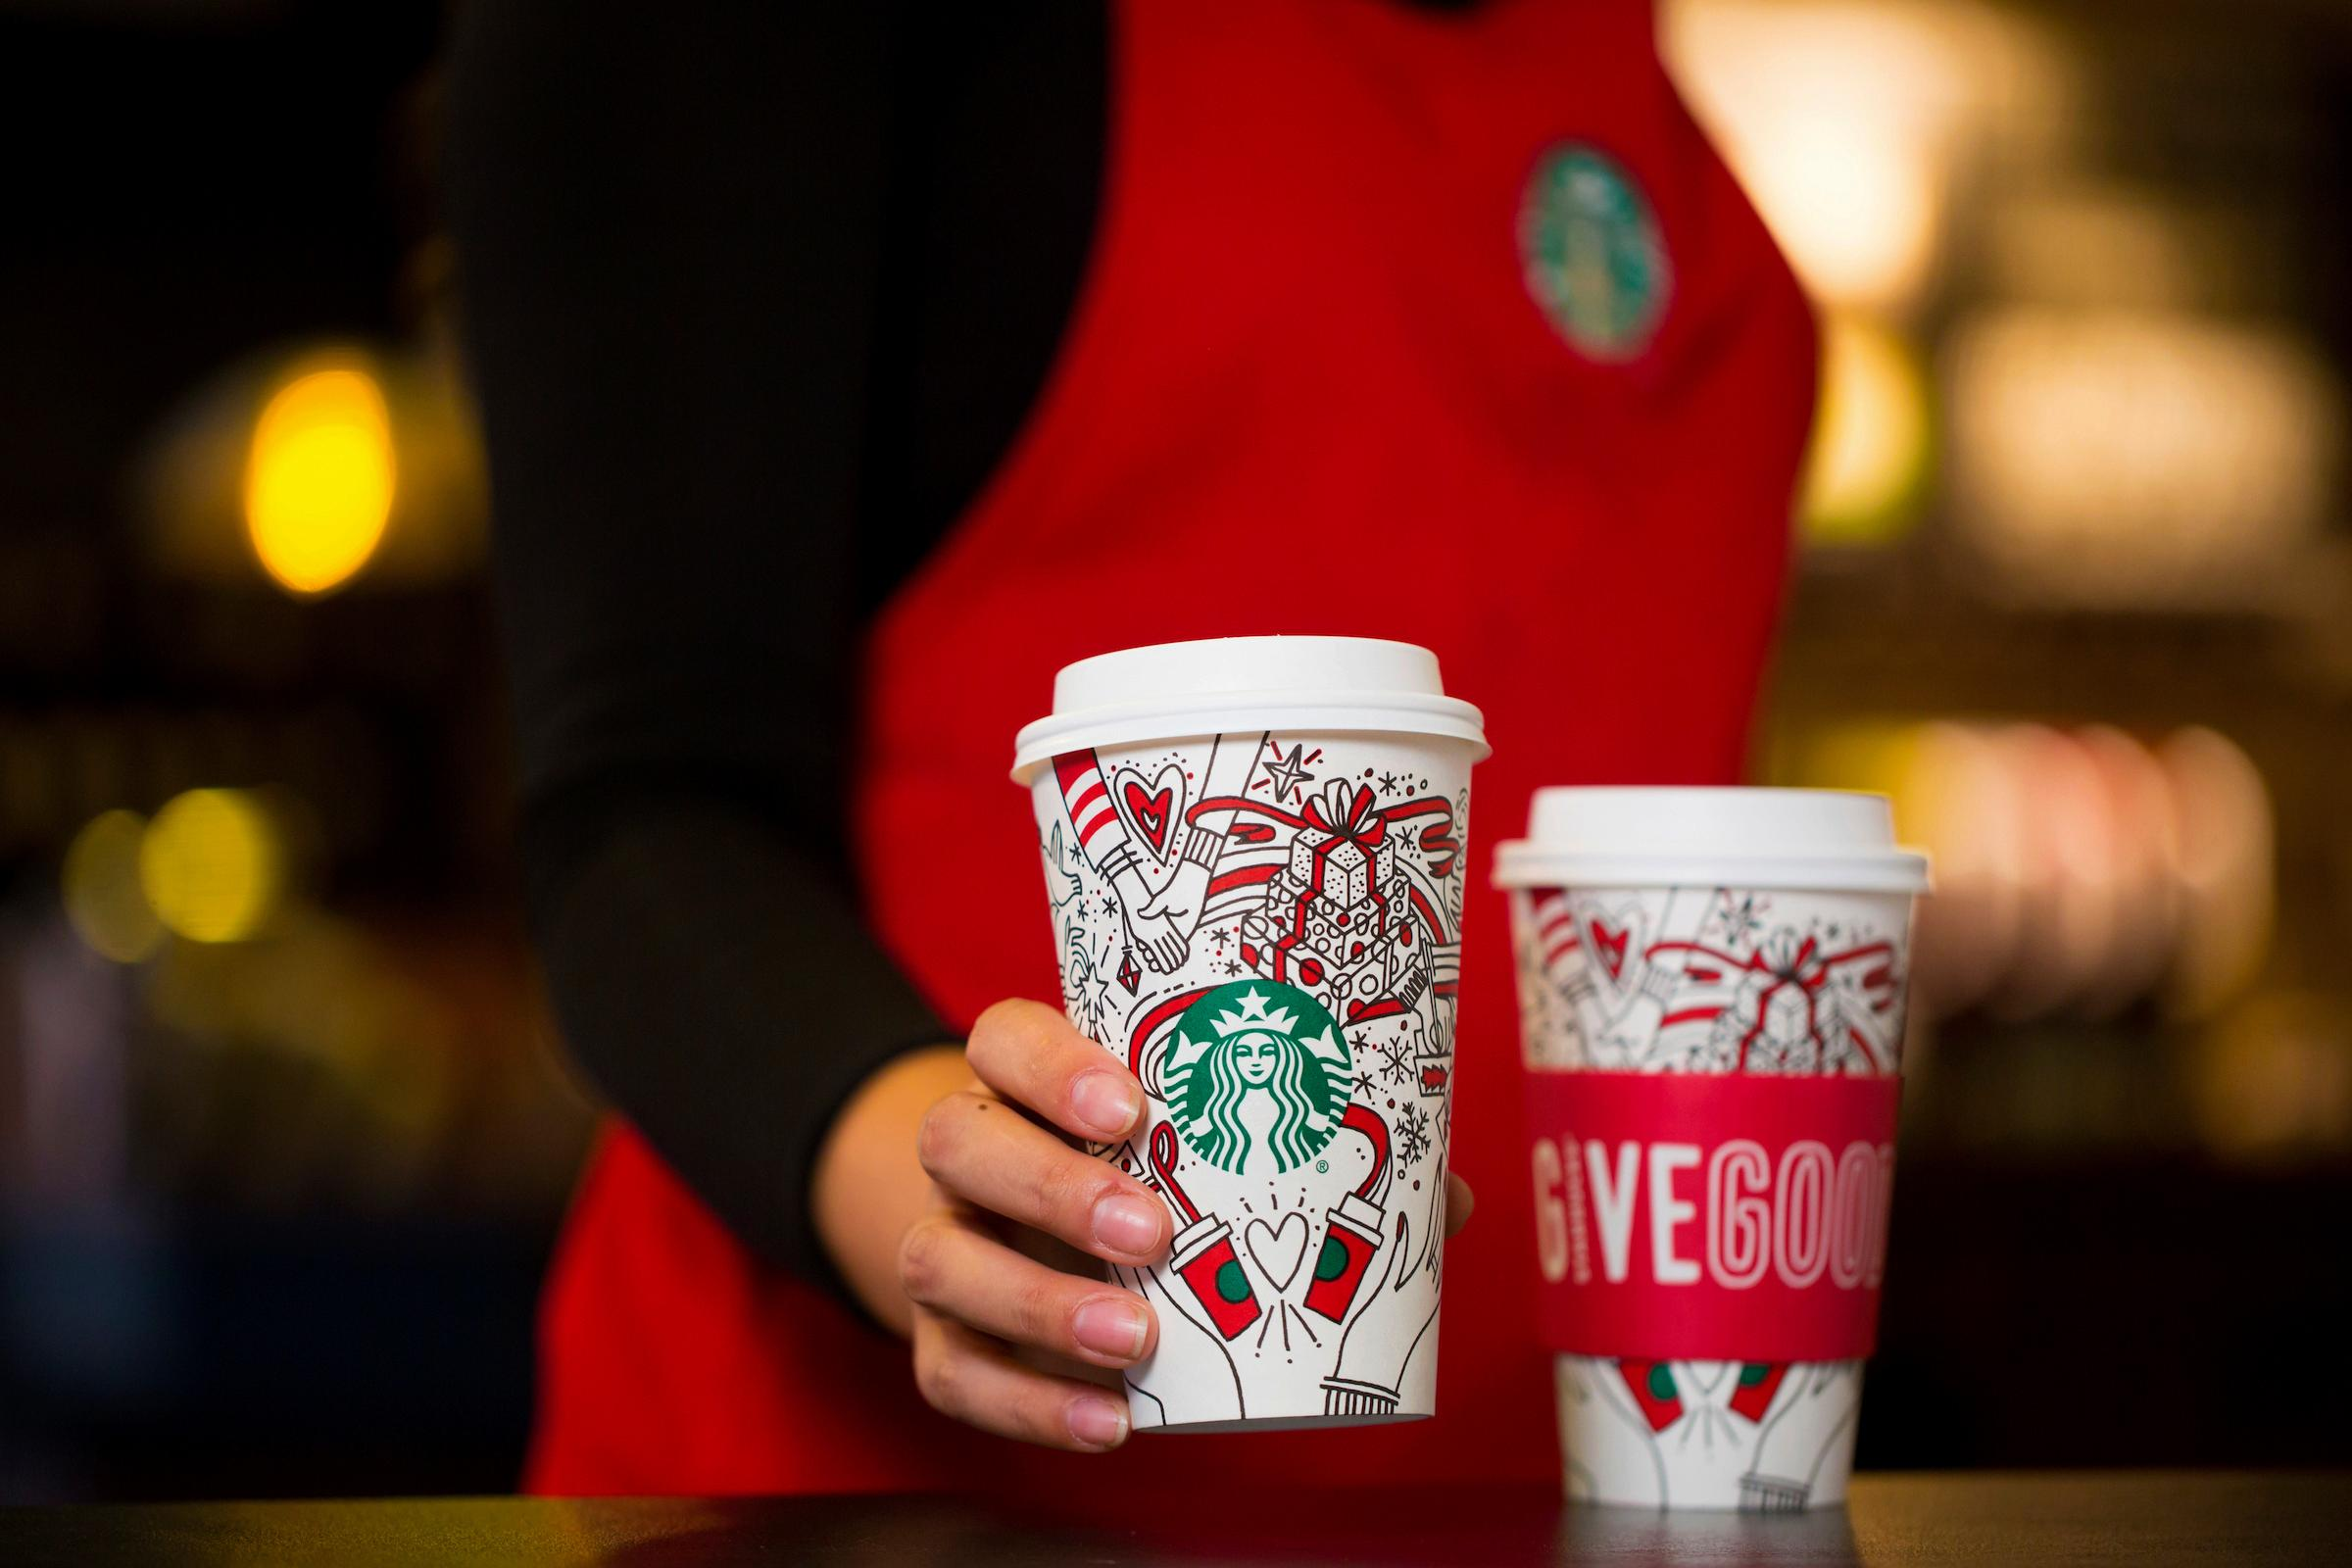 This Monday, Oct. 23, 2017, photo provided by Starbucks shows the company's 2017 holiday cup on display in Seattle. This latest holiday cup is mostly white, for customers to color in themselves. (Joshua Trujillo/Starbucks via AP)